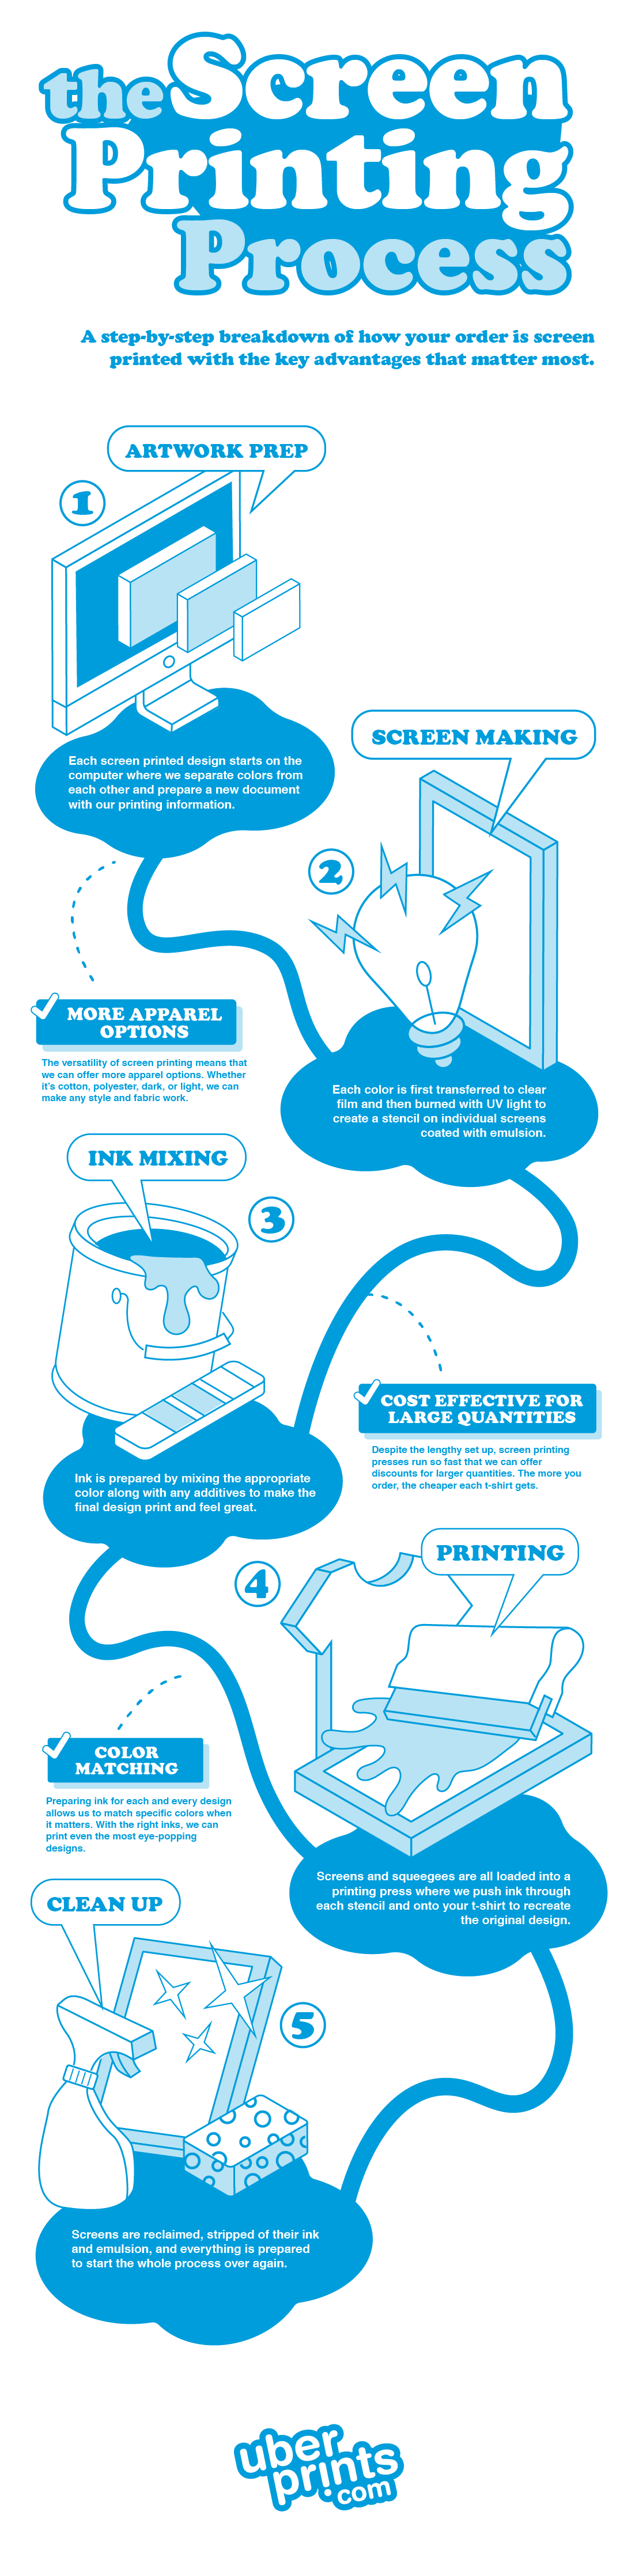 An infographic illustrating the five primary steps of the screen printing process.